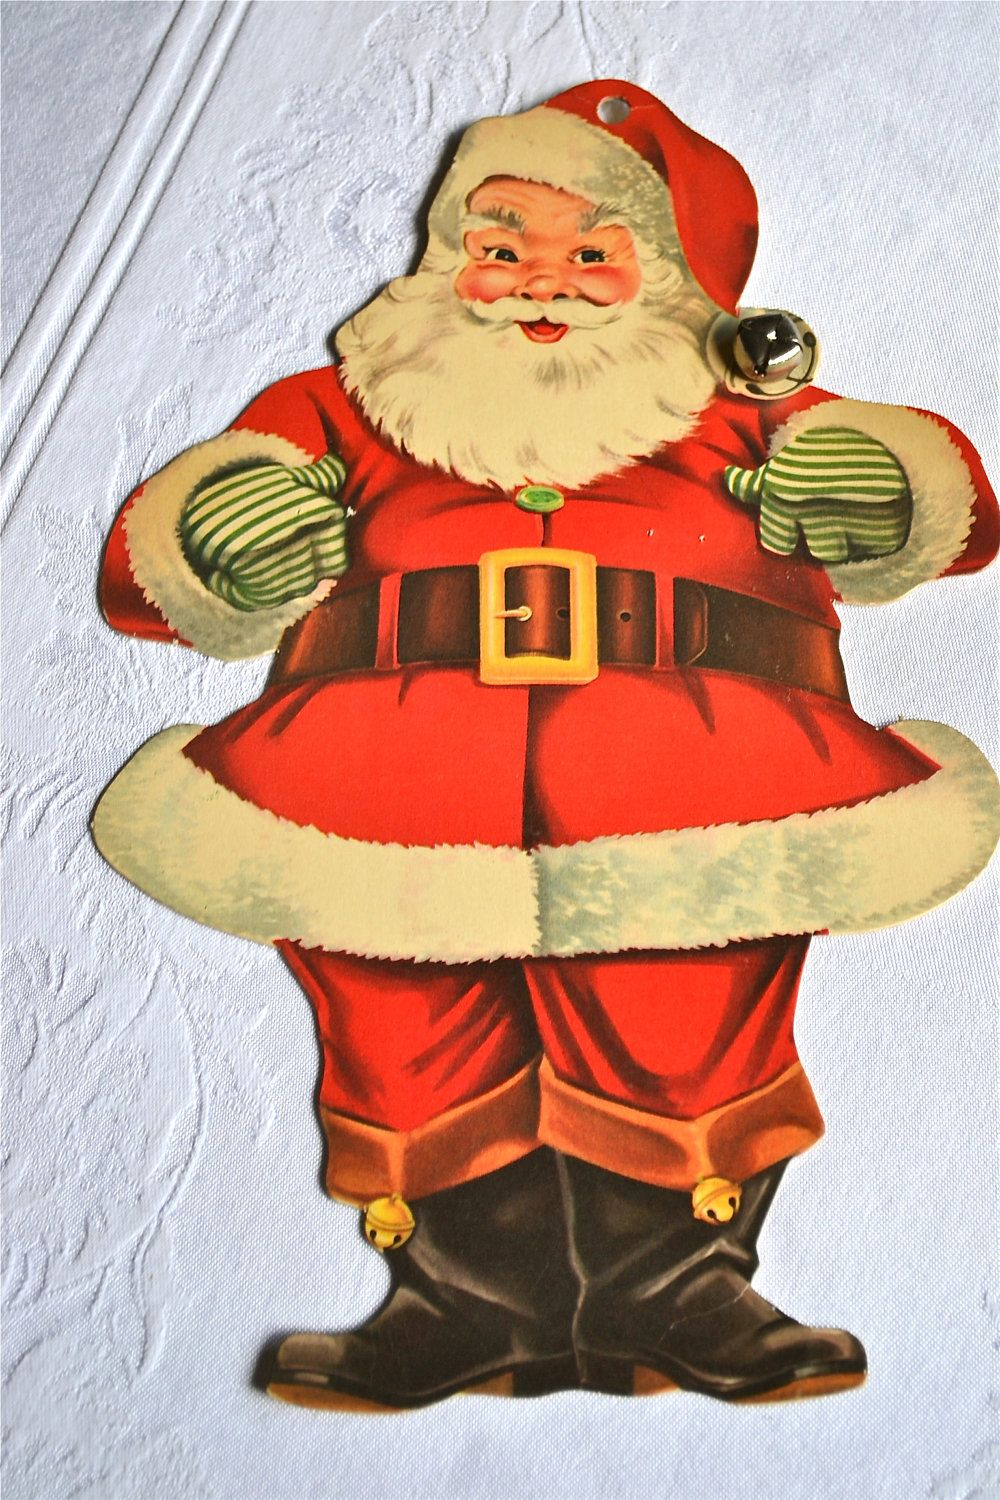 Vintage christmas decorations 1950s - Vintage Christmas Decoration Die Cut Wall Hanging Santa Claus With Bell